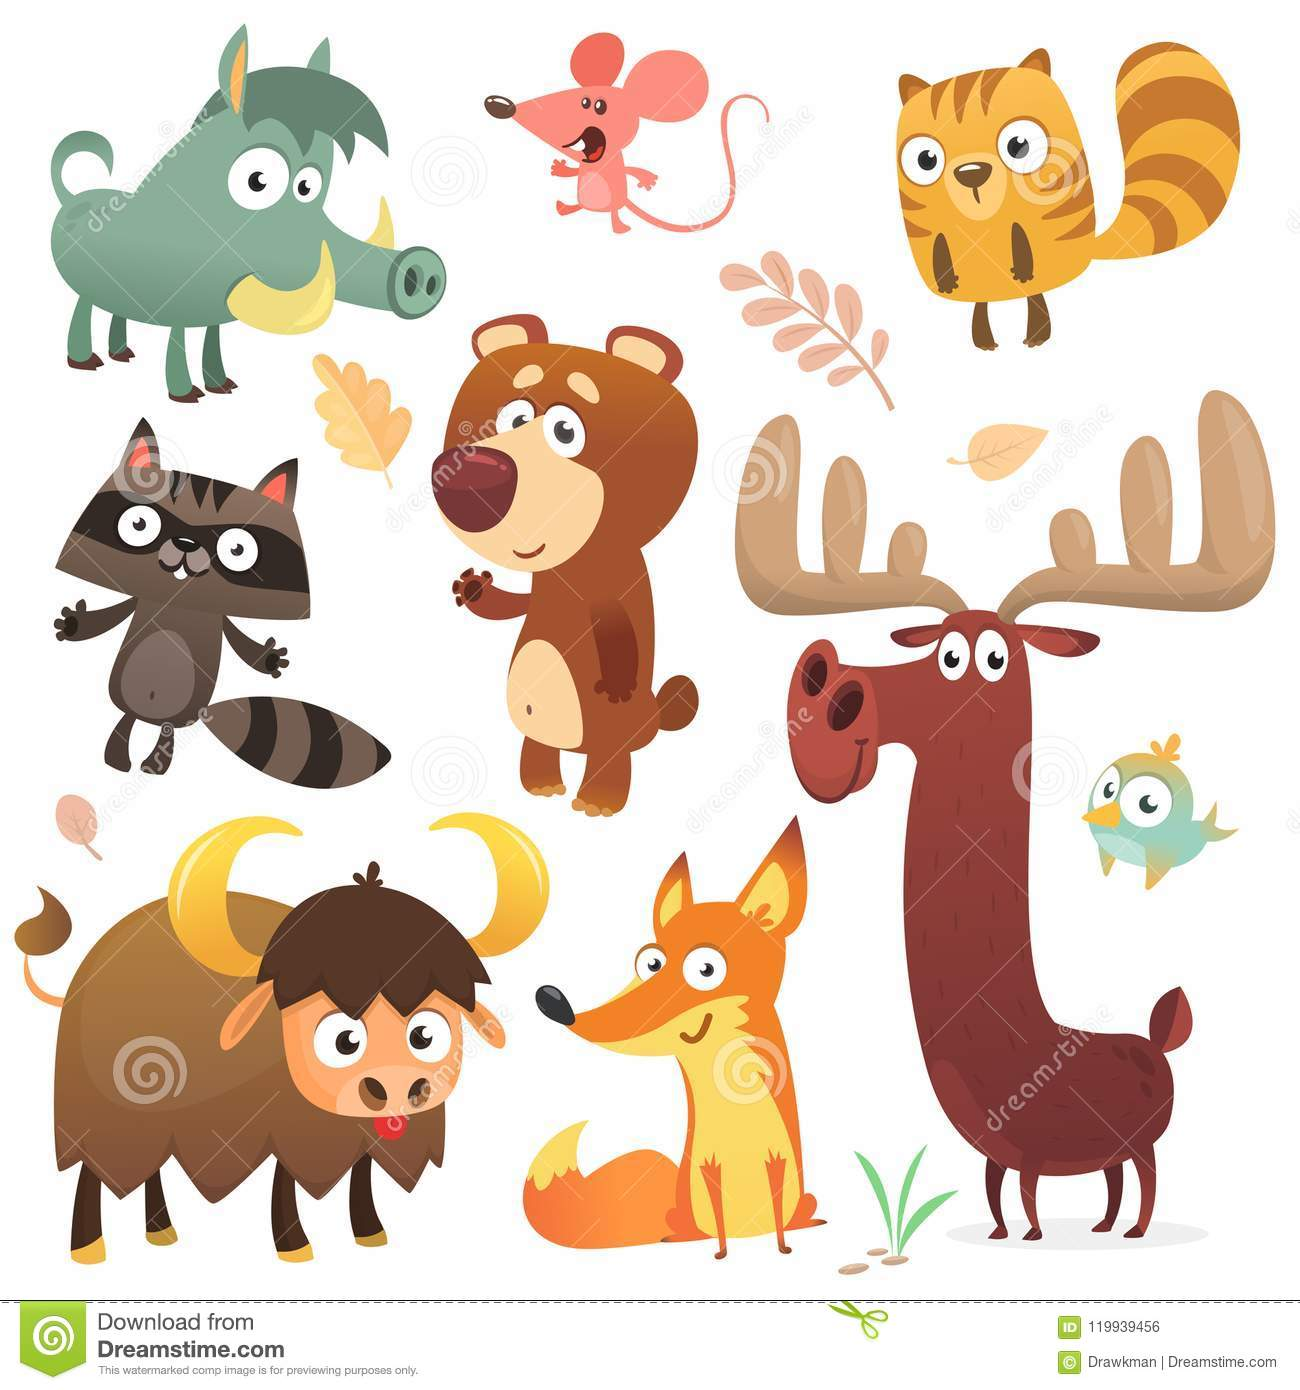 Cartoon forest animal characters. Wild cartoon cute animals collections vector. Big set of cartoon forest animals flat vector